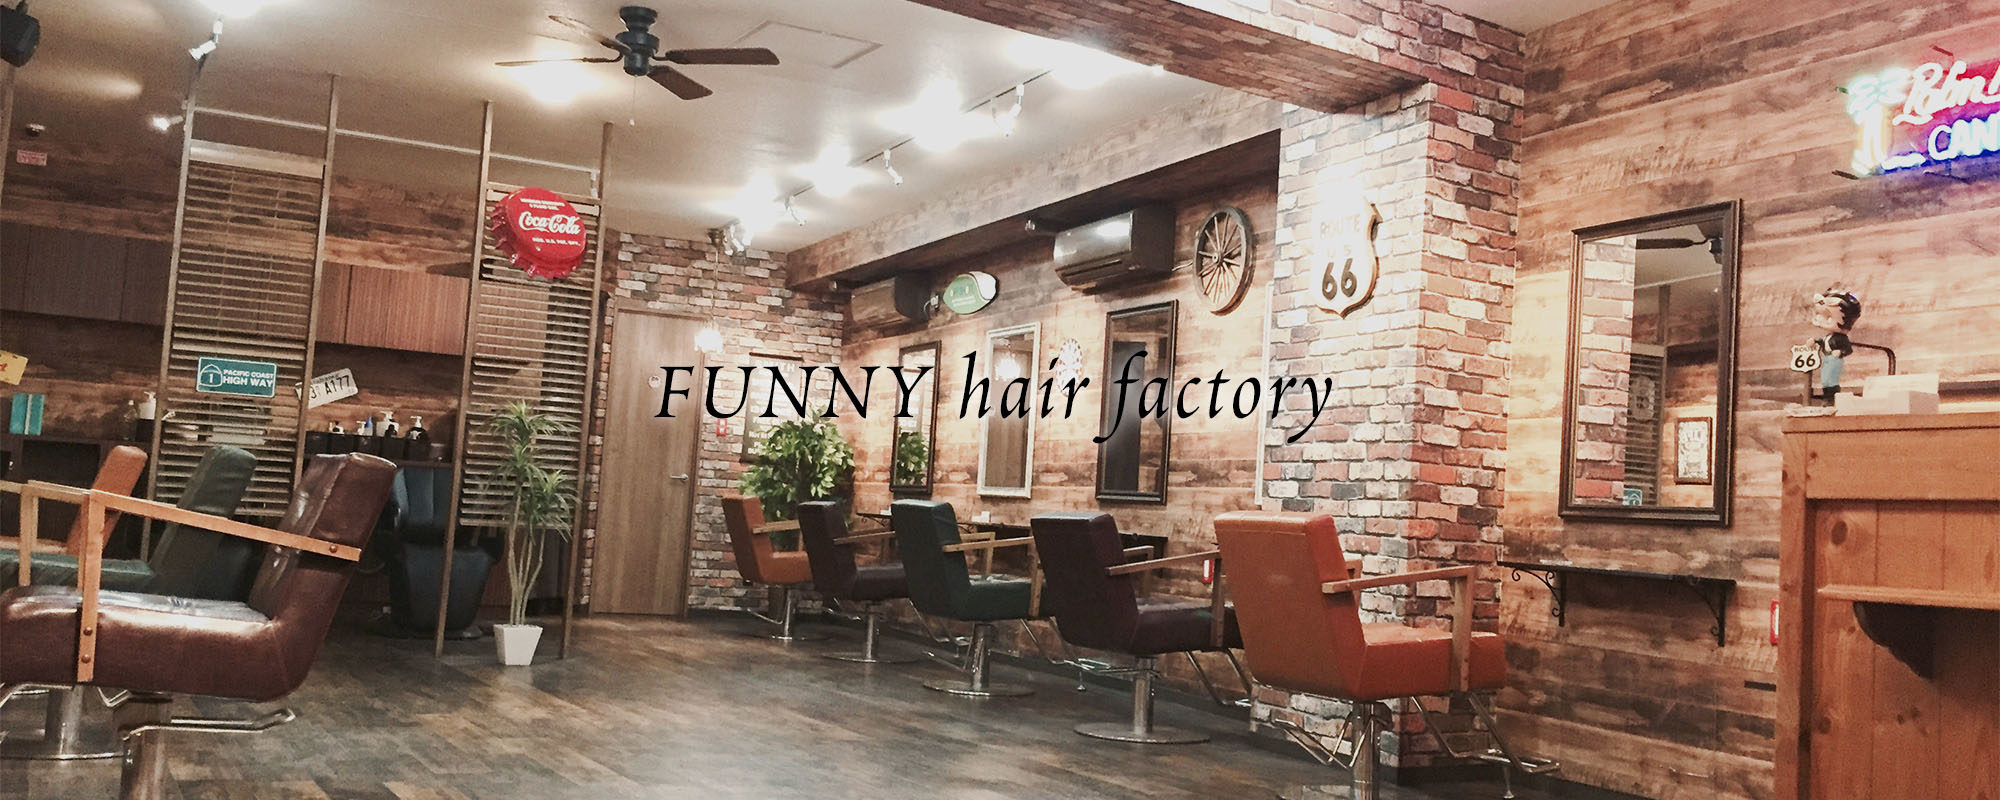 FUNNY hair factory